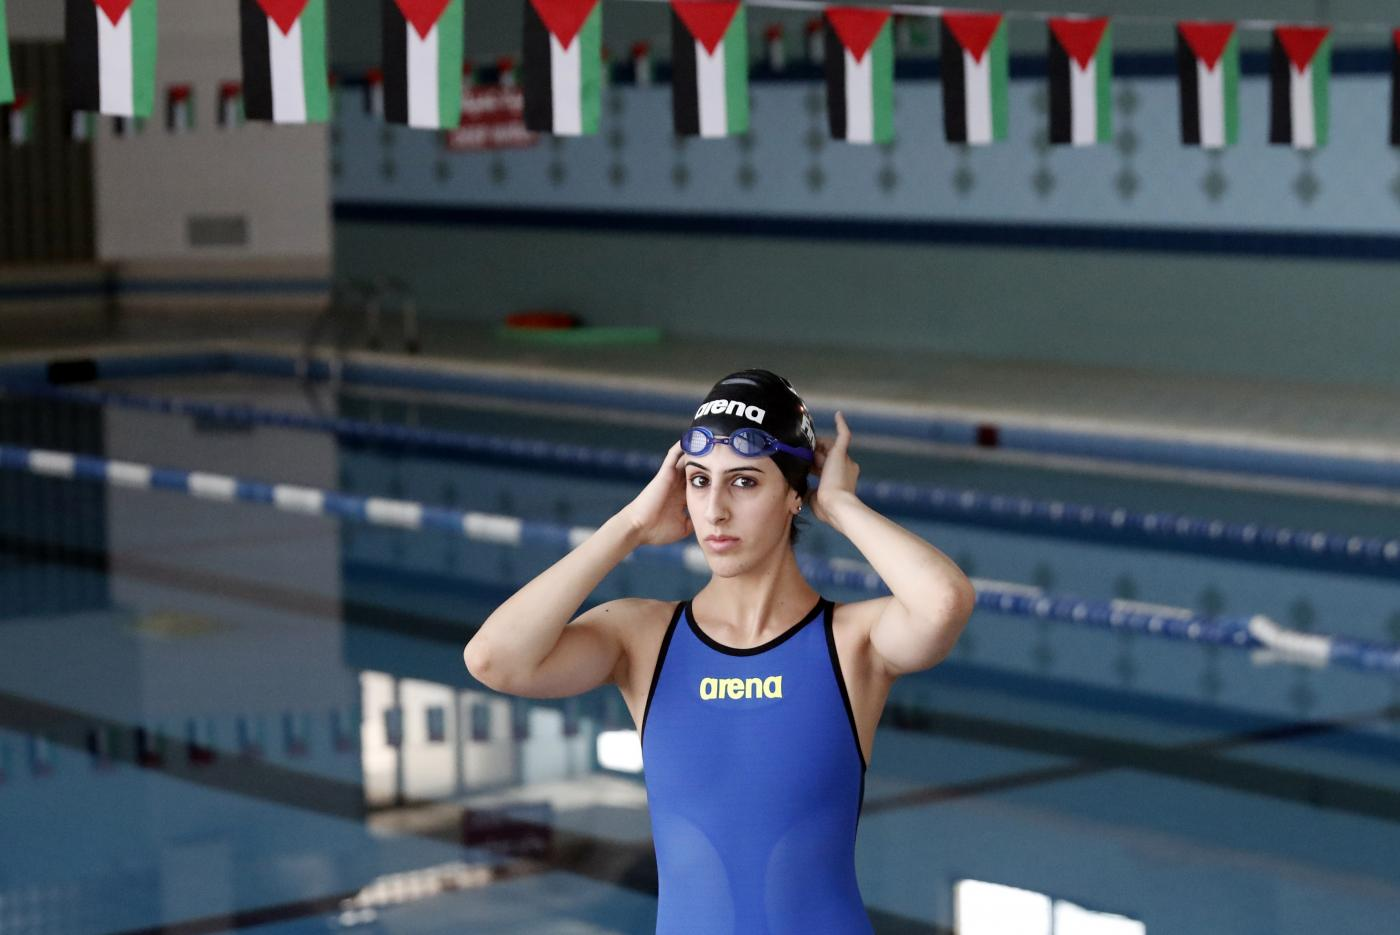 Palestinian Swimmer Overcomes Odds To Make A Splash At Rio Olympics Middle East Eye